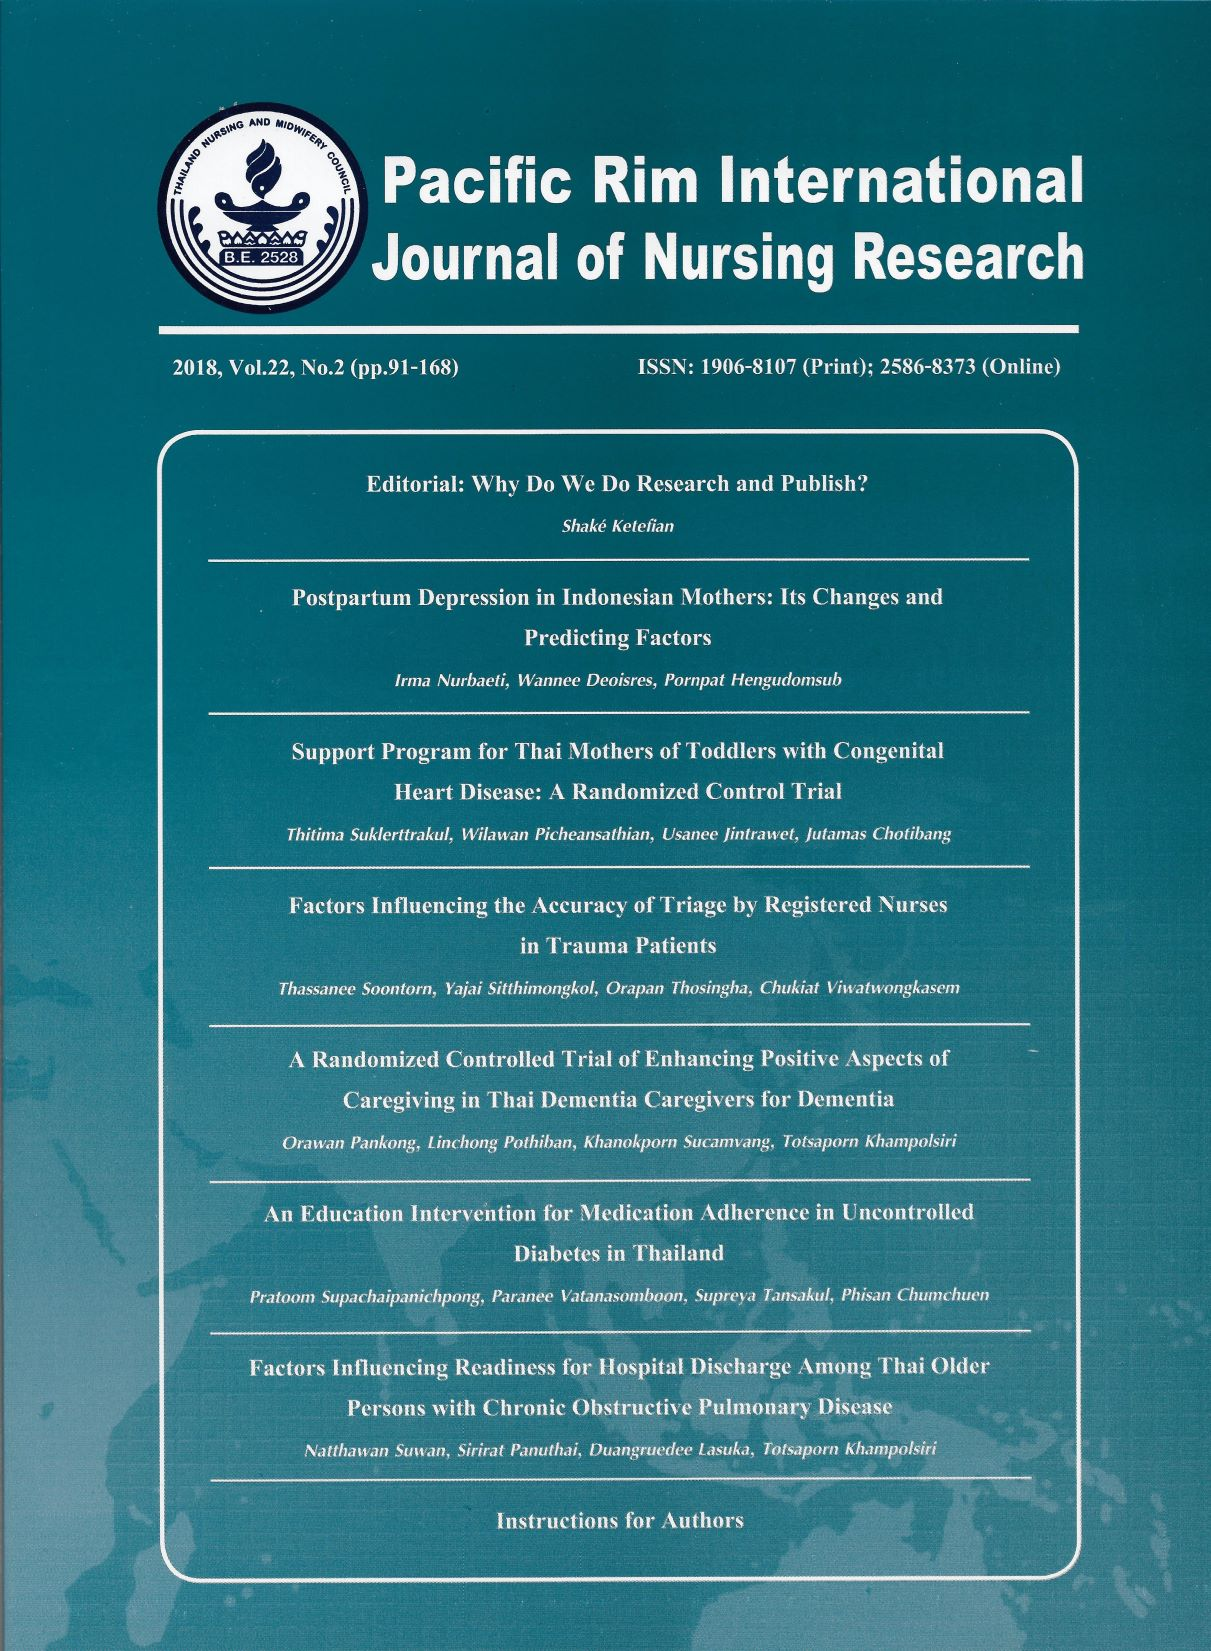 010 Research Paper Cover Issue 8869 En Us Nursing Articles On Diabetes Amazing Pdf Full